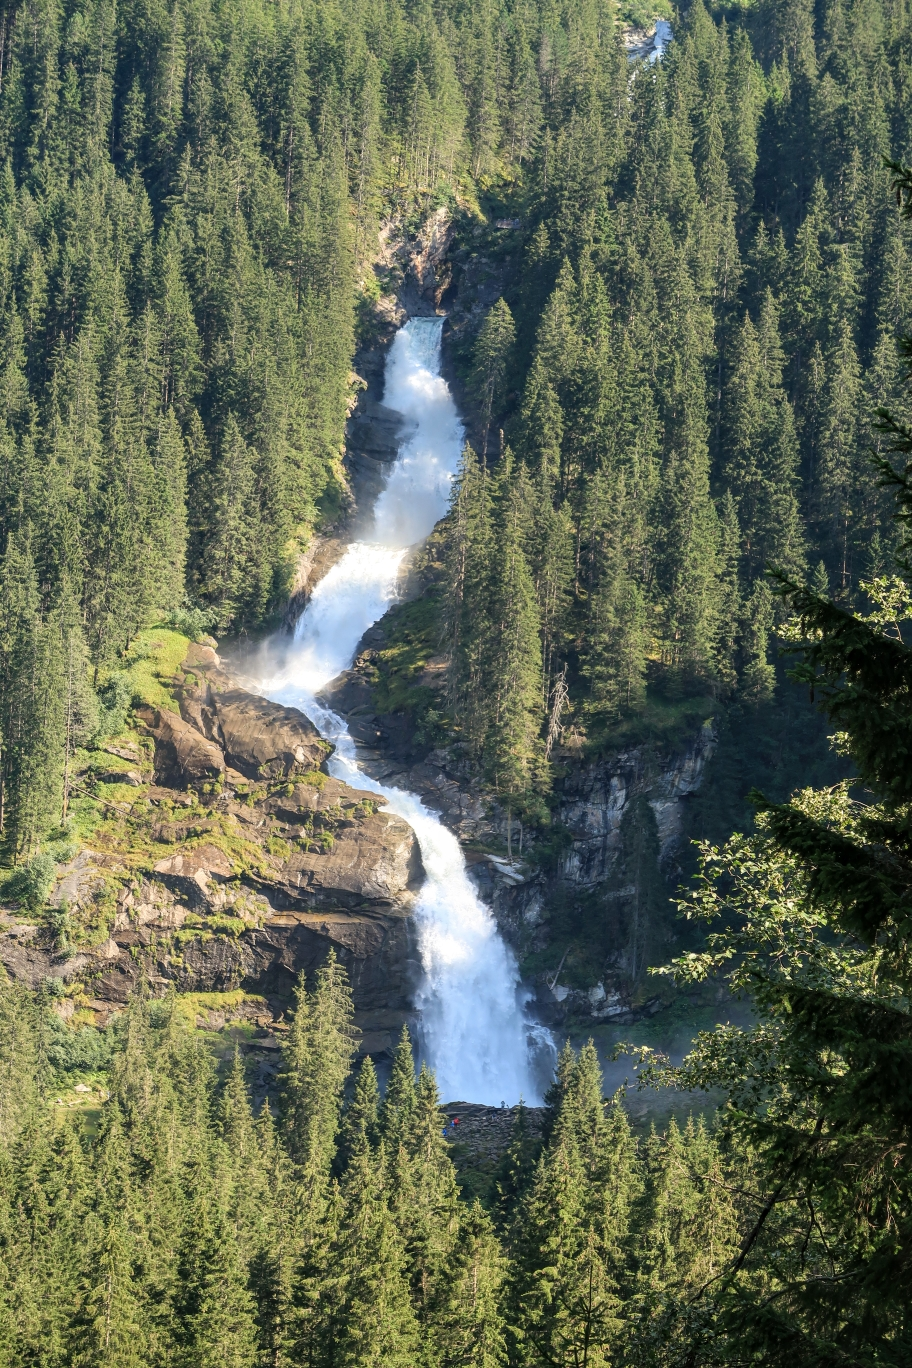 Gerlospass grosser Wasserfall